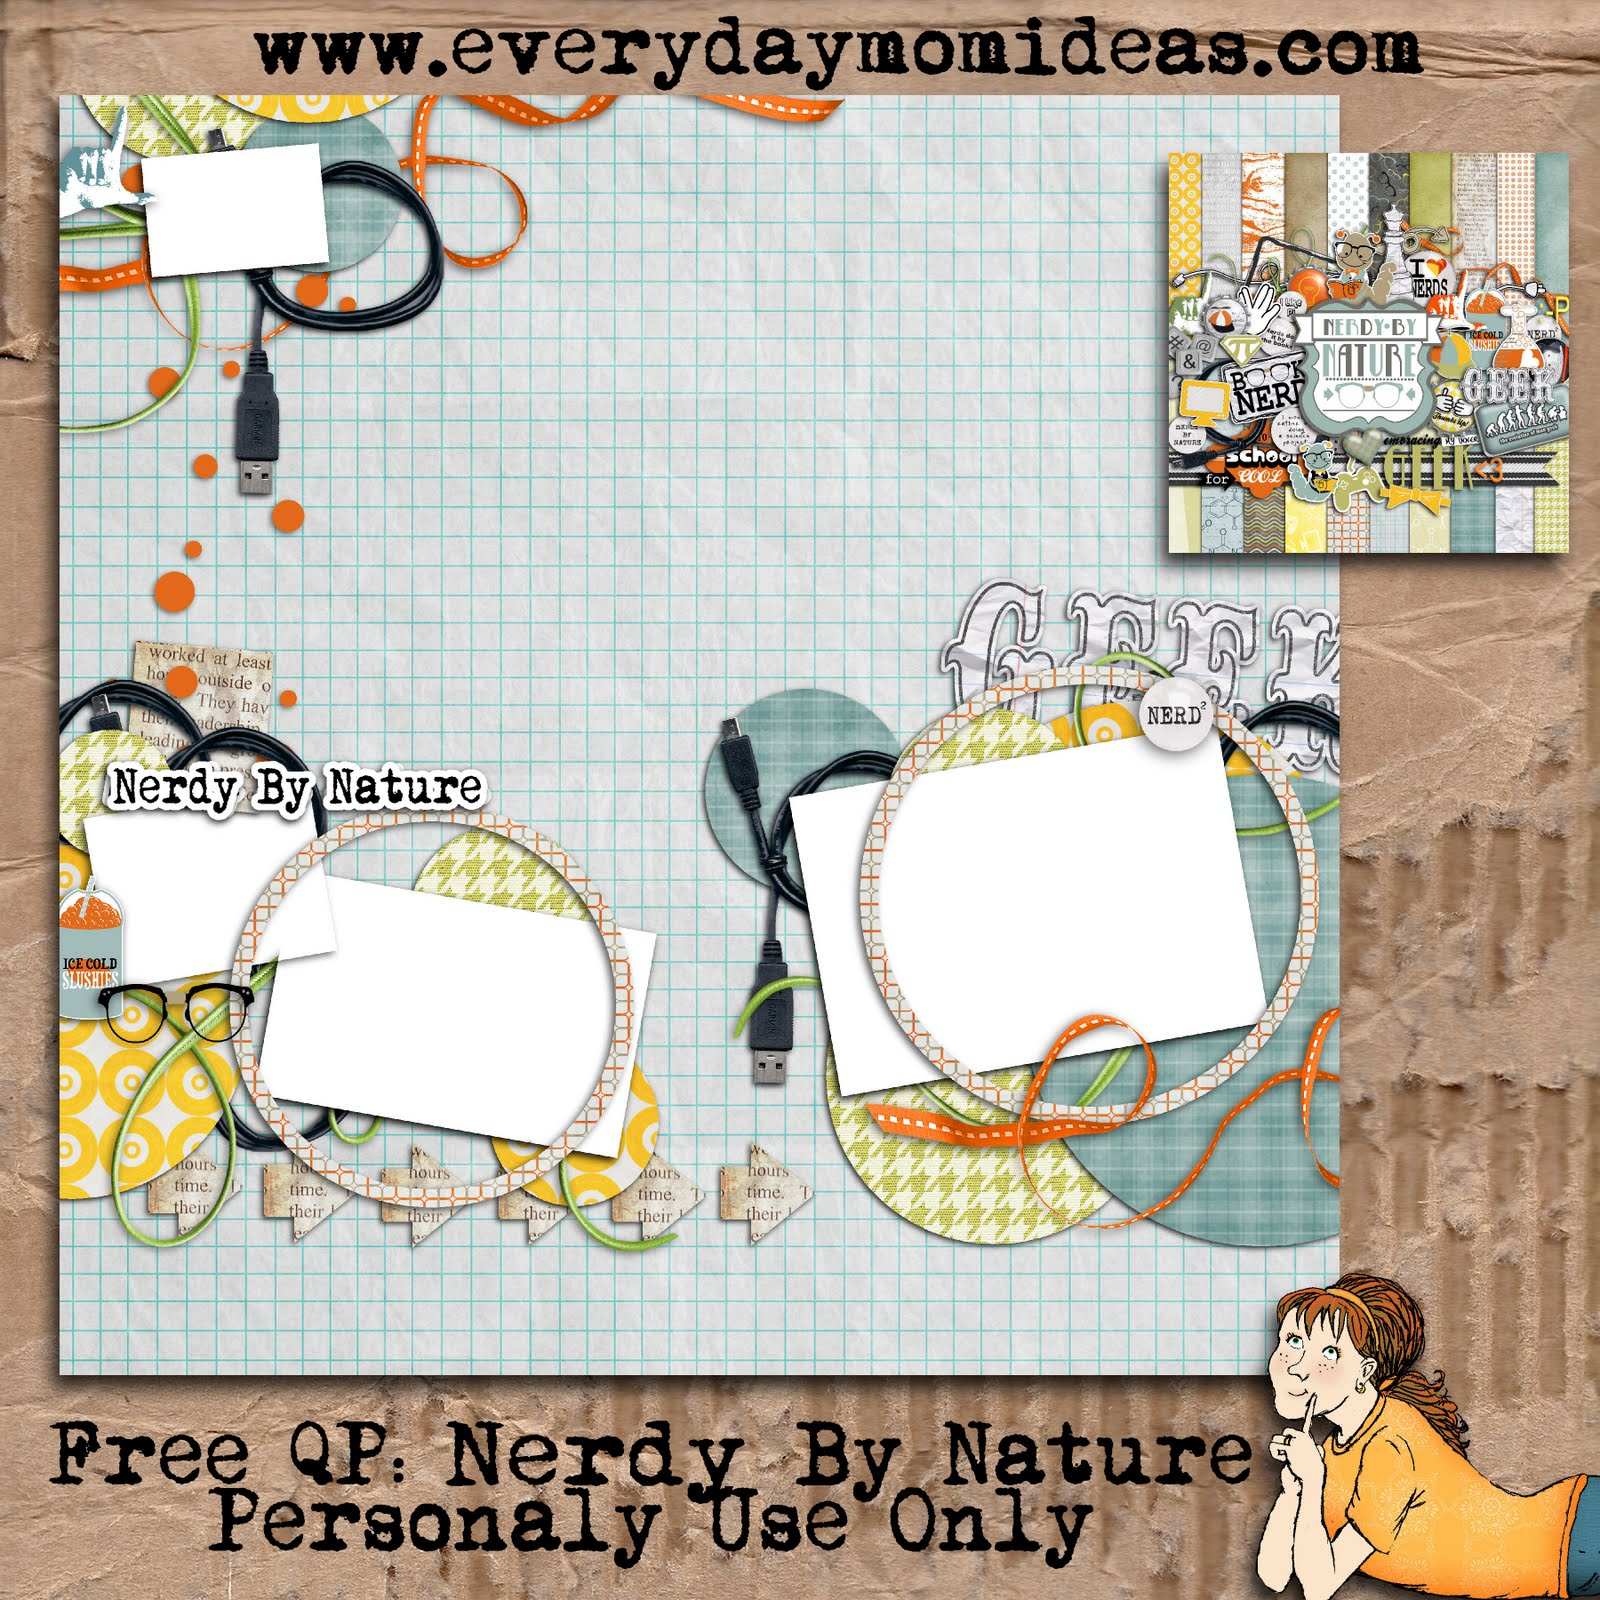 Digital scrapbooking kits free all about scrapbooking ideas - Free Nerdy By Nature Digital Scrapbooking Quick Page Everyday Free Nerdy By Nature Digital Scrapbooking Quick